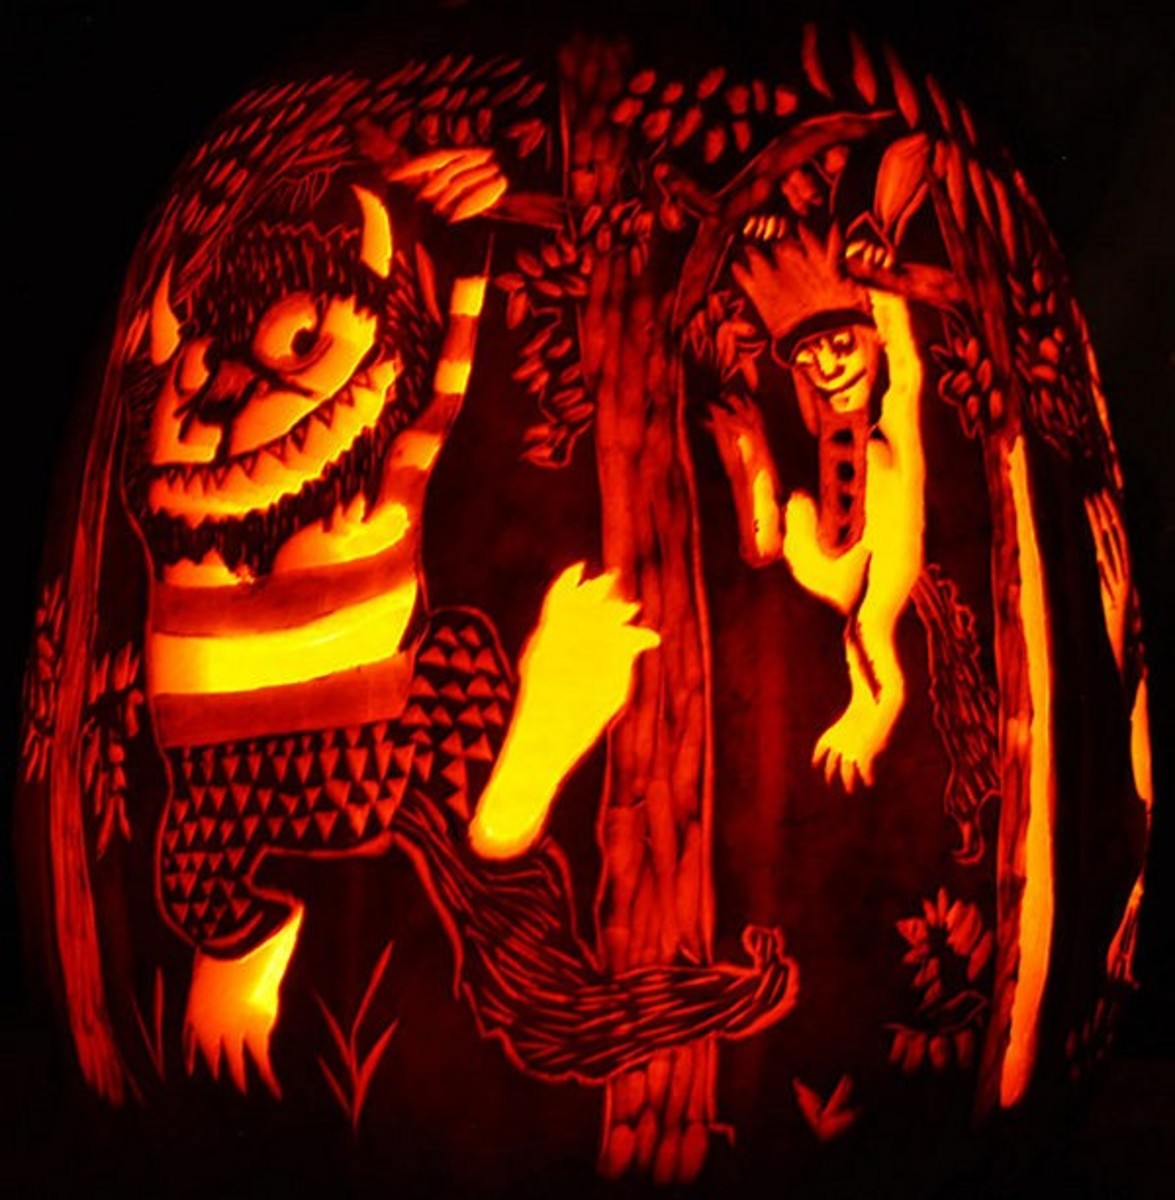 26 Amazing Halloween Carved Pumpkins Plus Pumpkin Facts and How The Name Jack o' Lantern Came About.